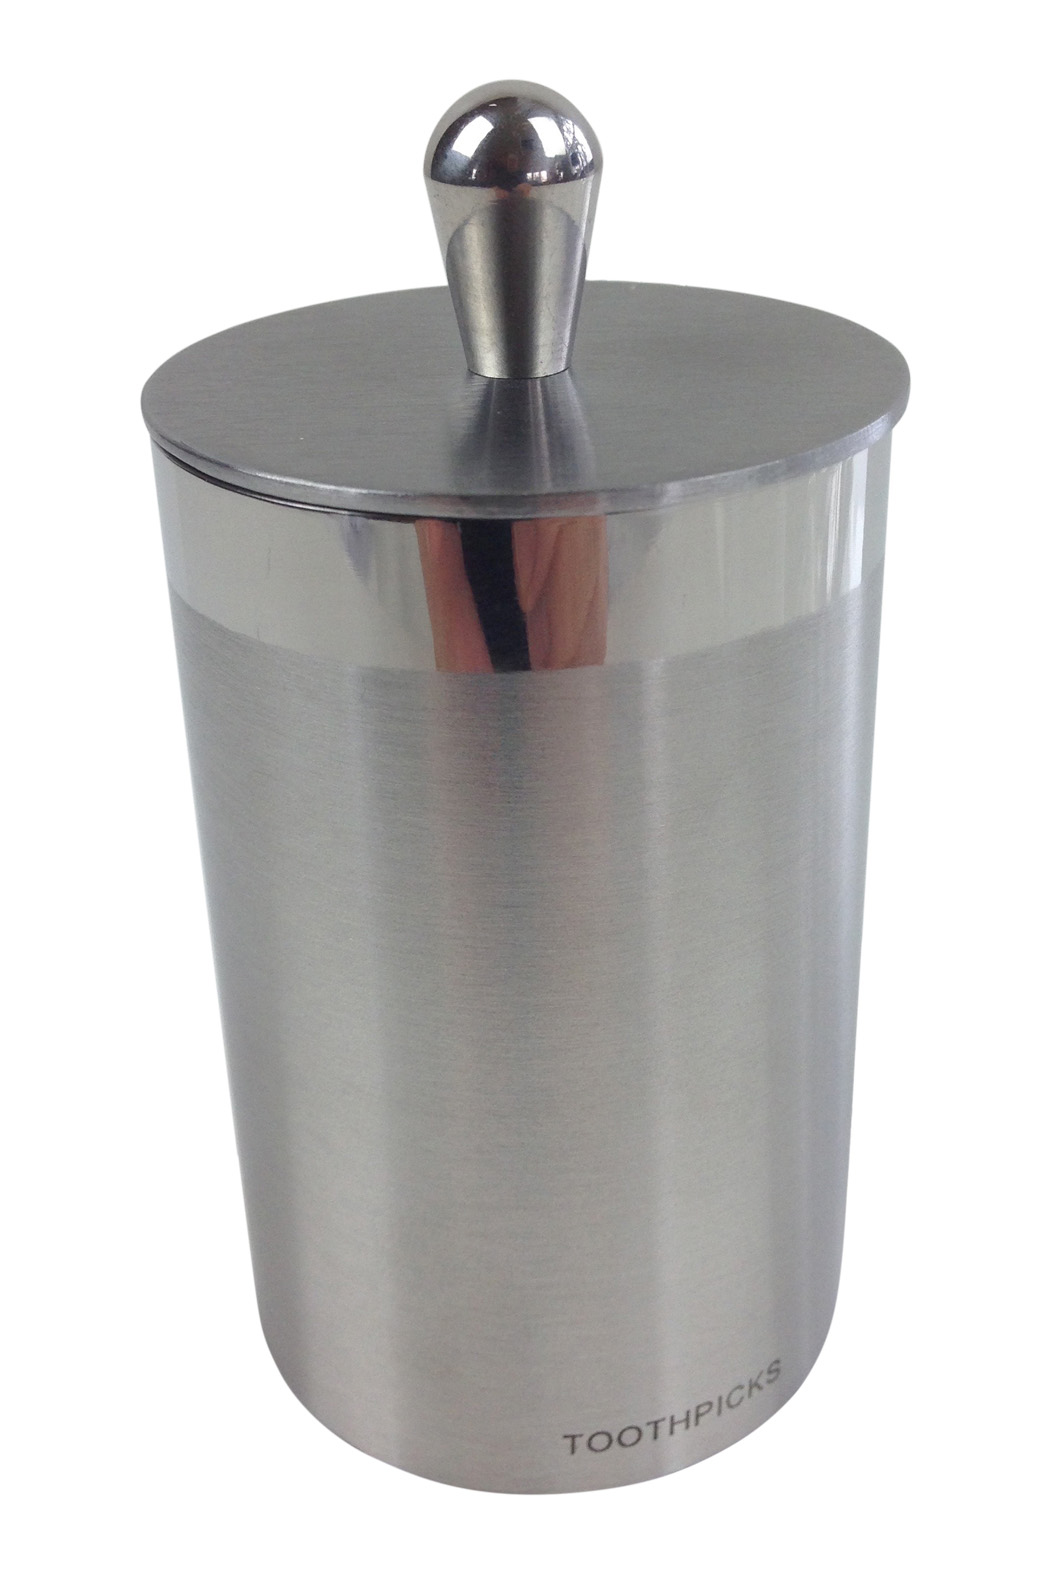 gh78 Stainless steel toothpick holder